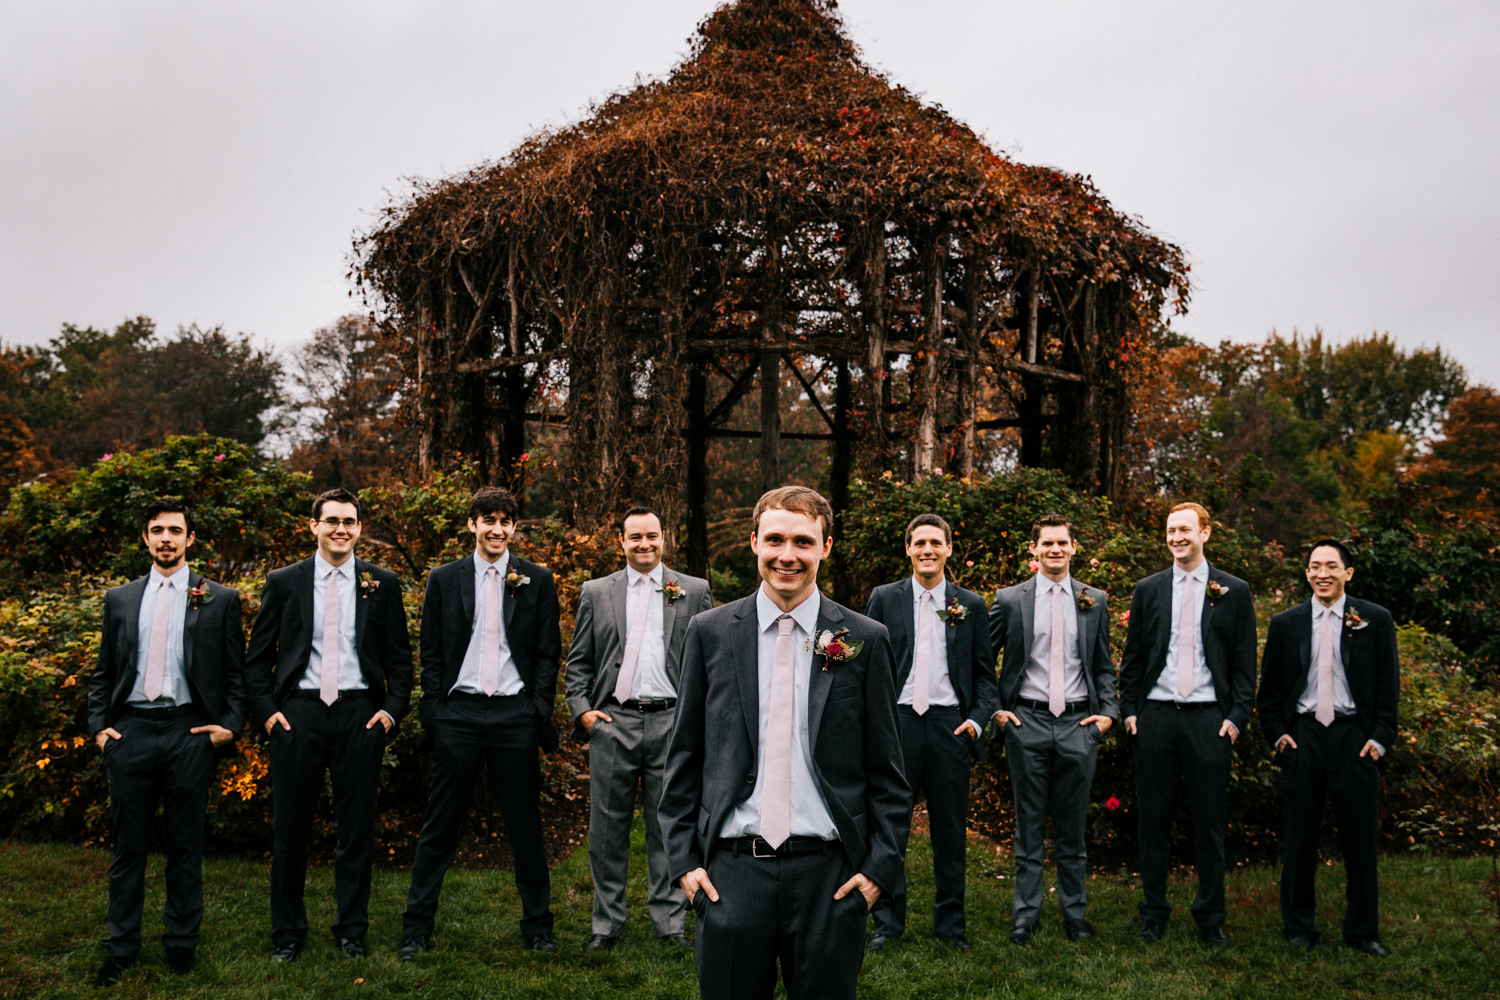 groomsmen-boston-wedding-photographer-rose-garden-elizabeth-park-west-hartford-new-england-weddings.jpg